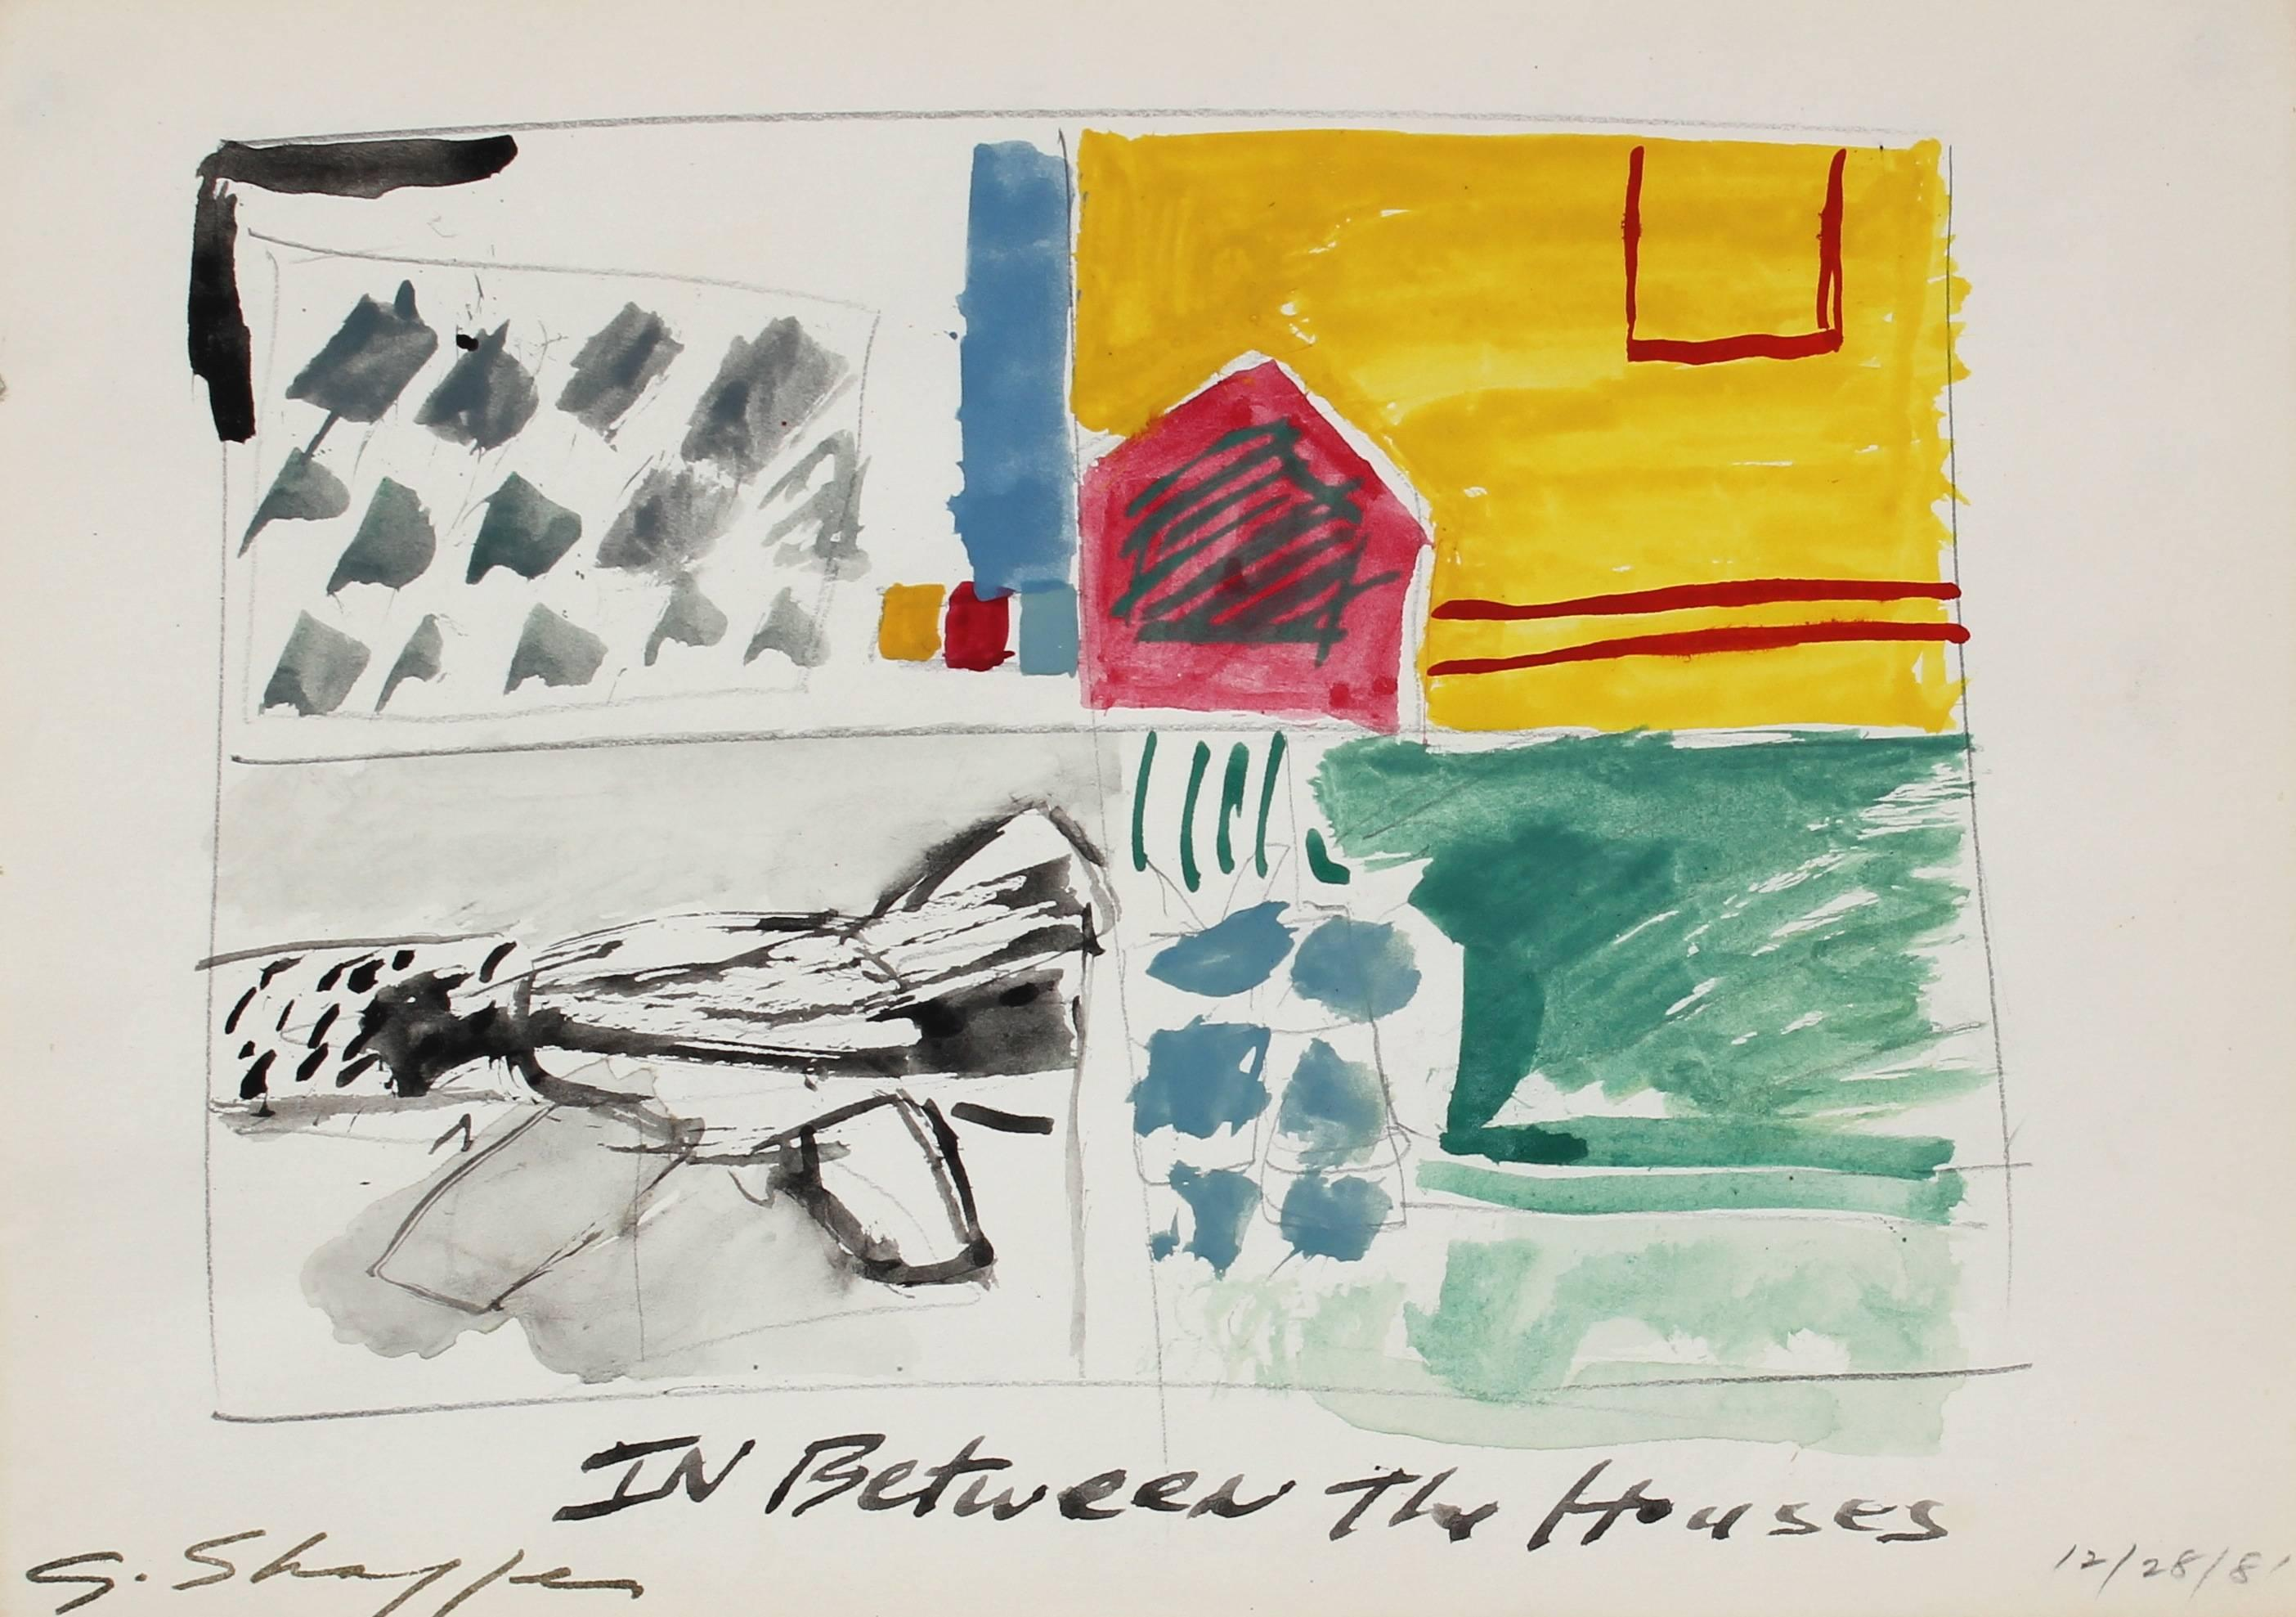 """""""In Between the Houses"""", Charcoal & Gouache Abstract, 1981"""